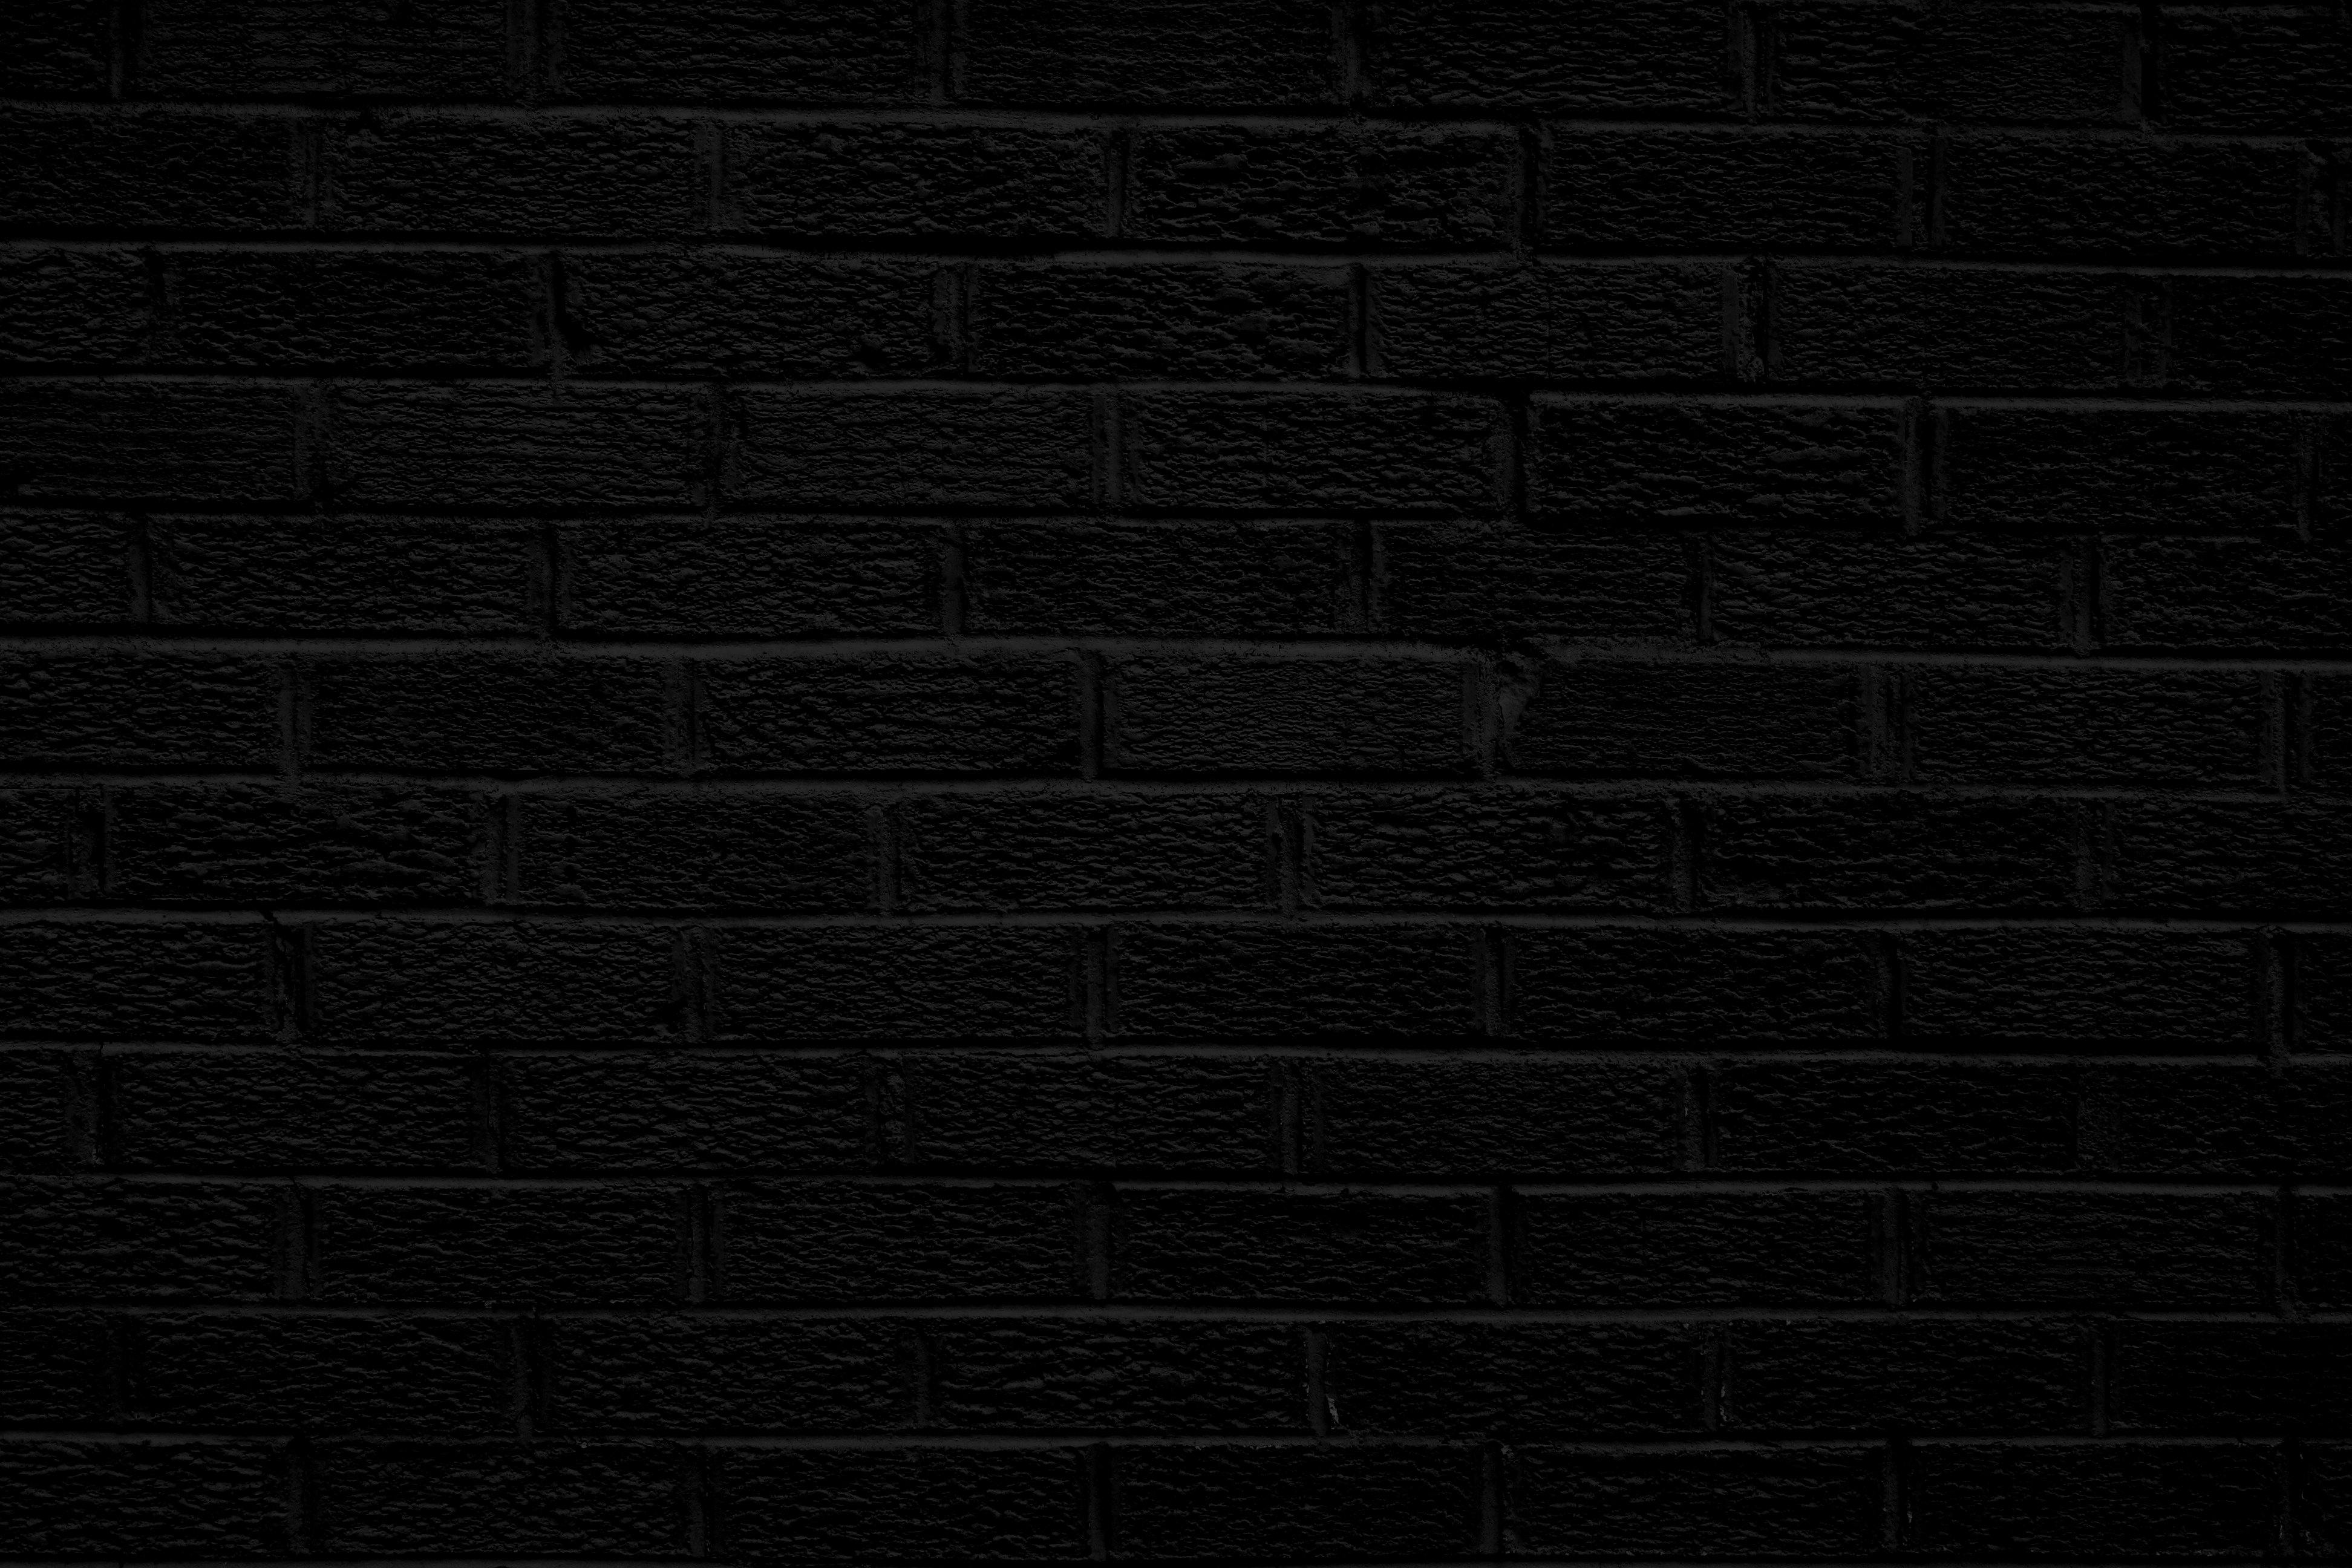 Black brick wallpaper 2017 grasscloth wallpaper for Black and white wallpaper for walls